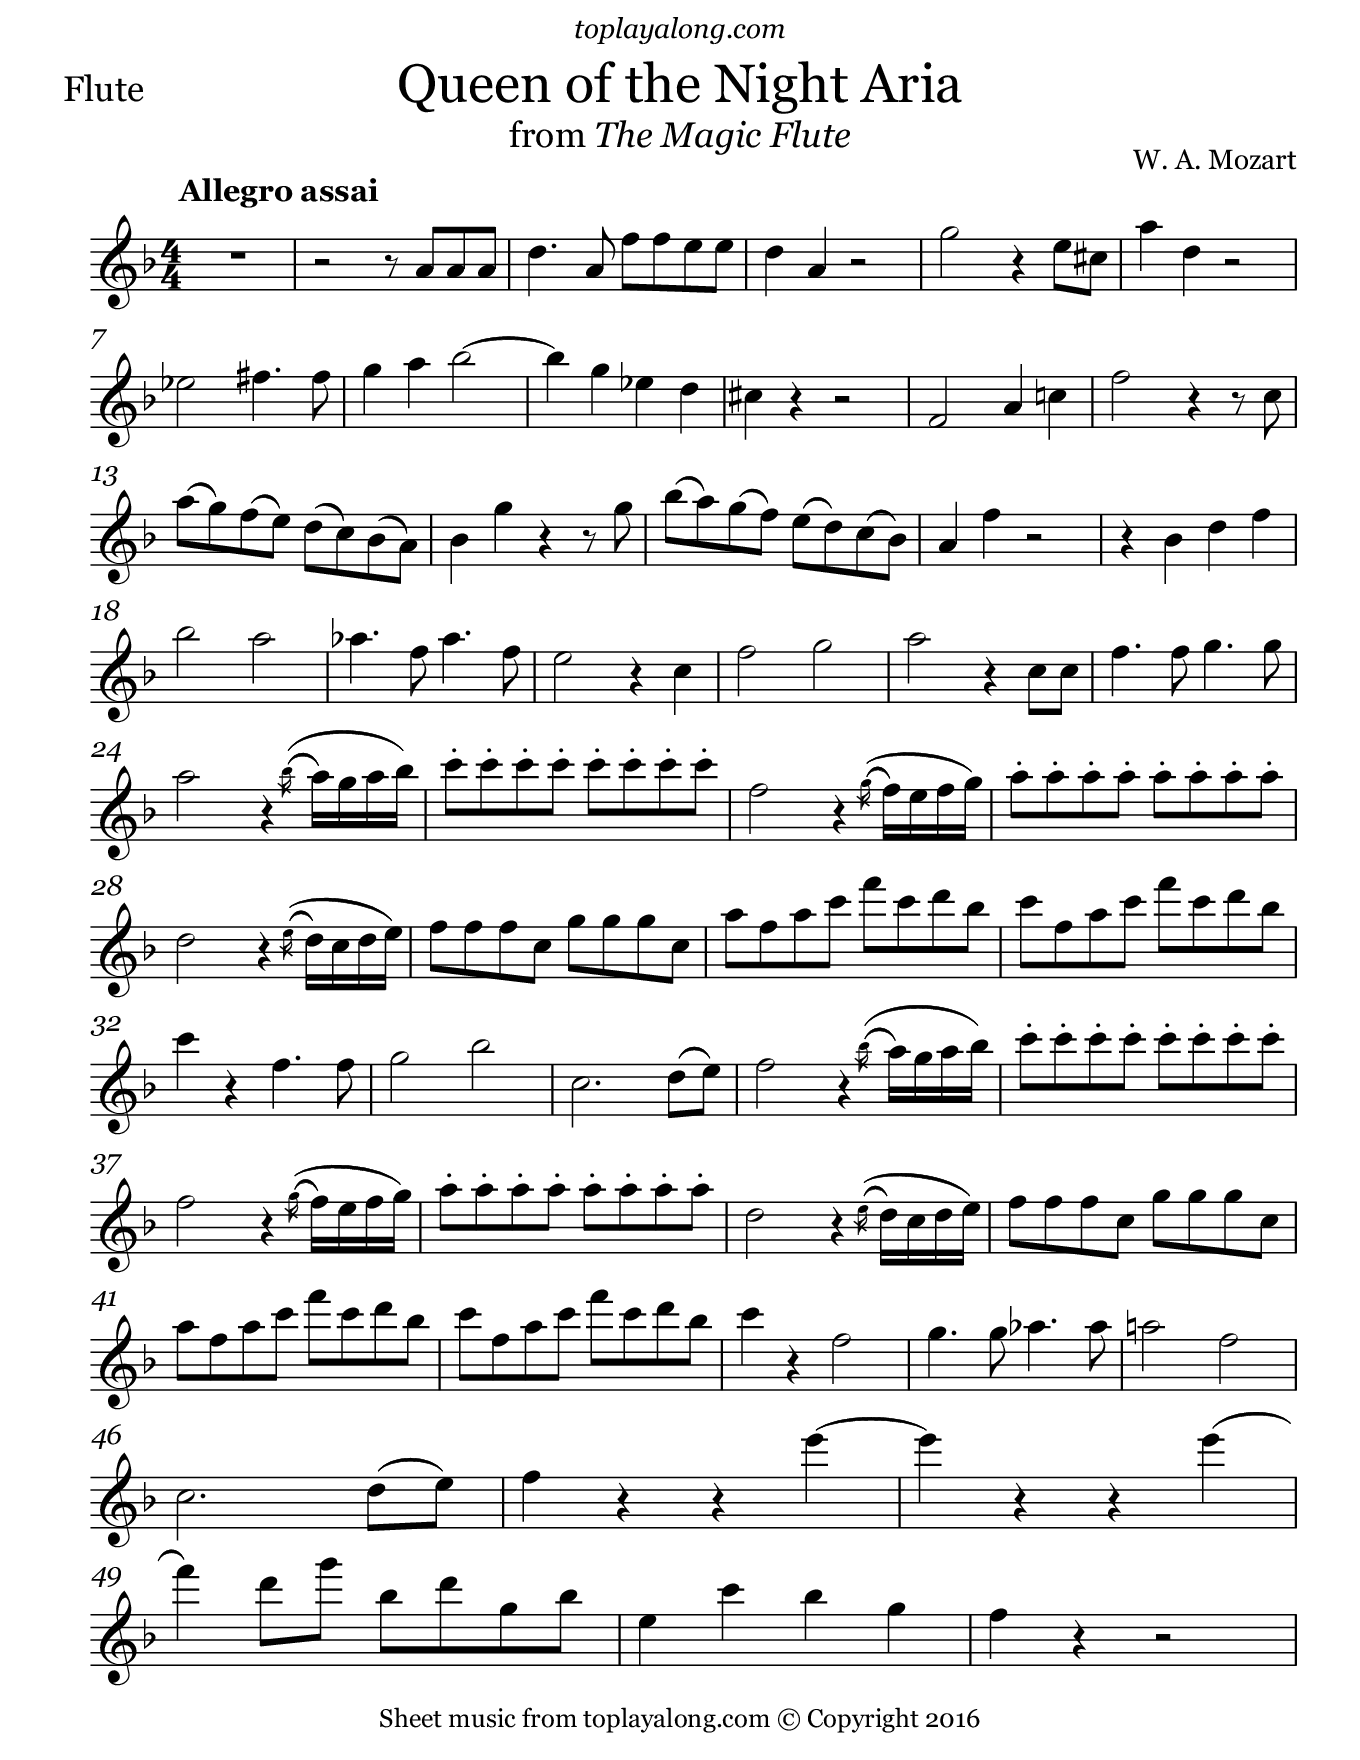 Queen of the Night from The Magic Flute by Mozart. Sheet music for Flute, page 1.